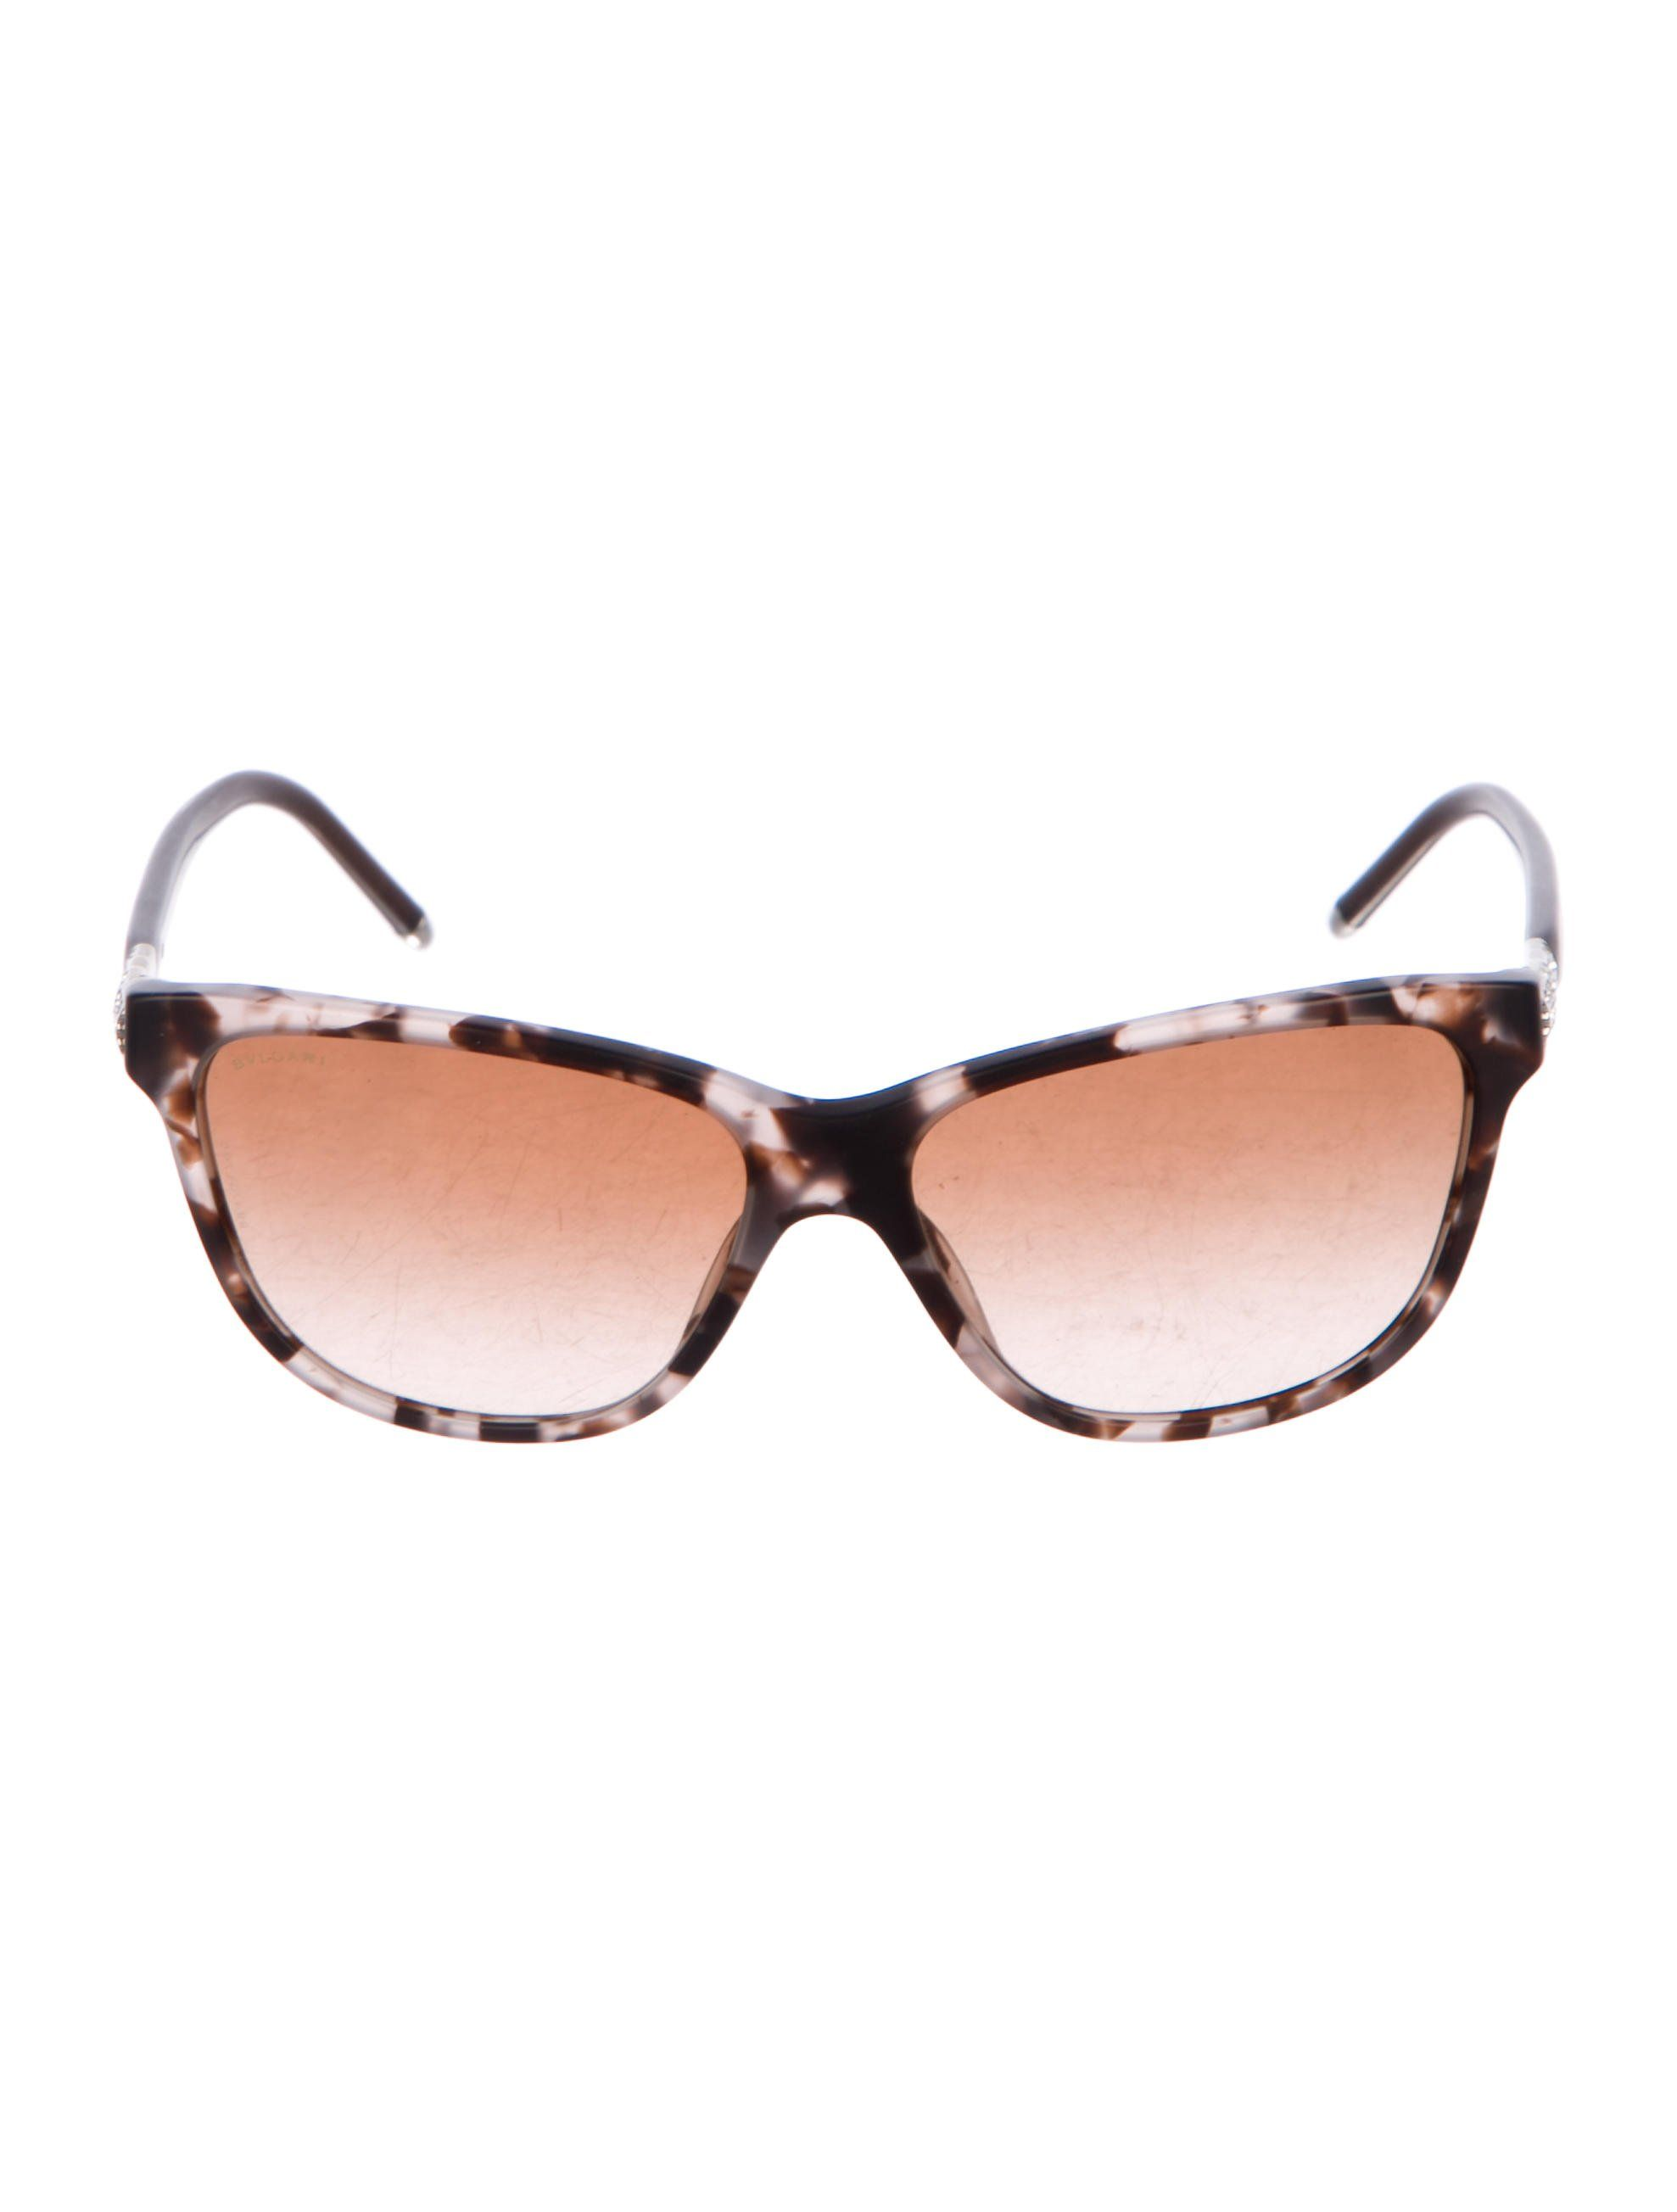 8e1fd1f3c48 Brown and multicolor matte acetate Bvlgari sunglasses with gradient lenses  and crystal embellishments at temples.